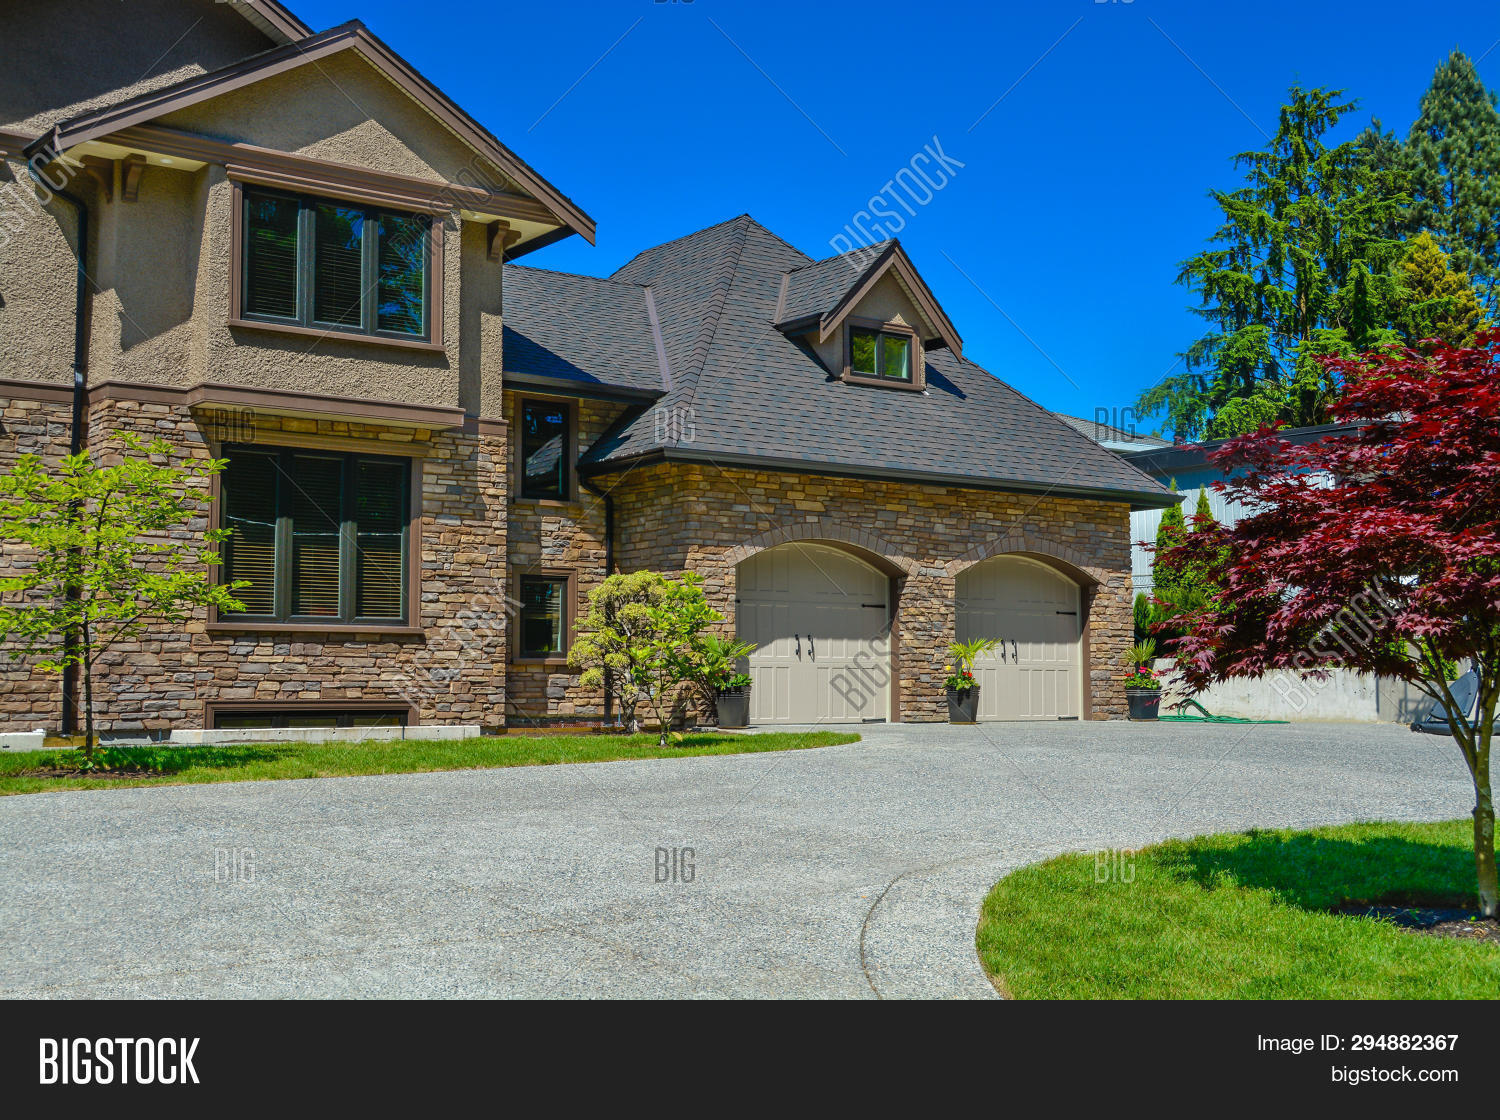 Fragment Luxury House Image Photo Free Trial Bigstock